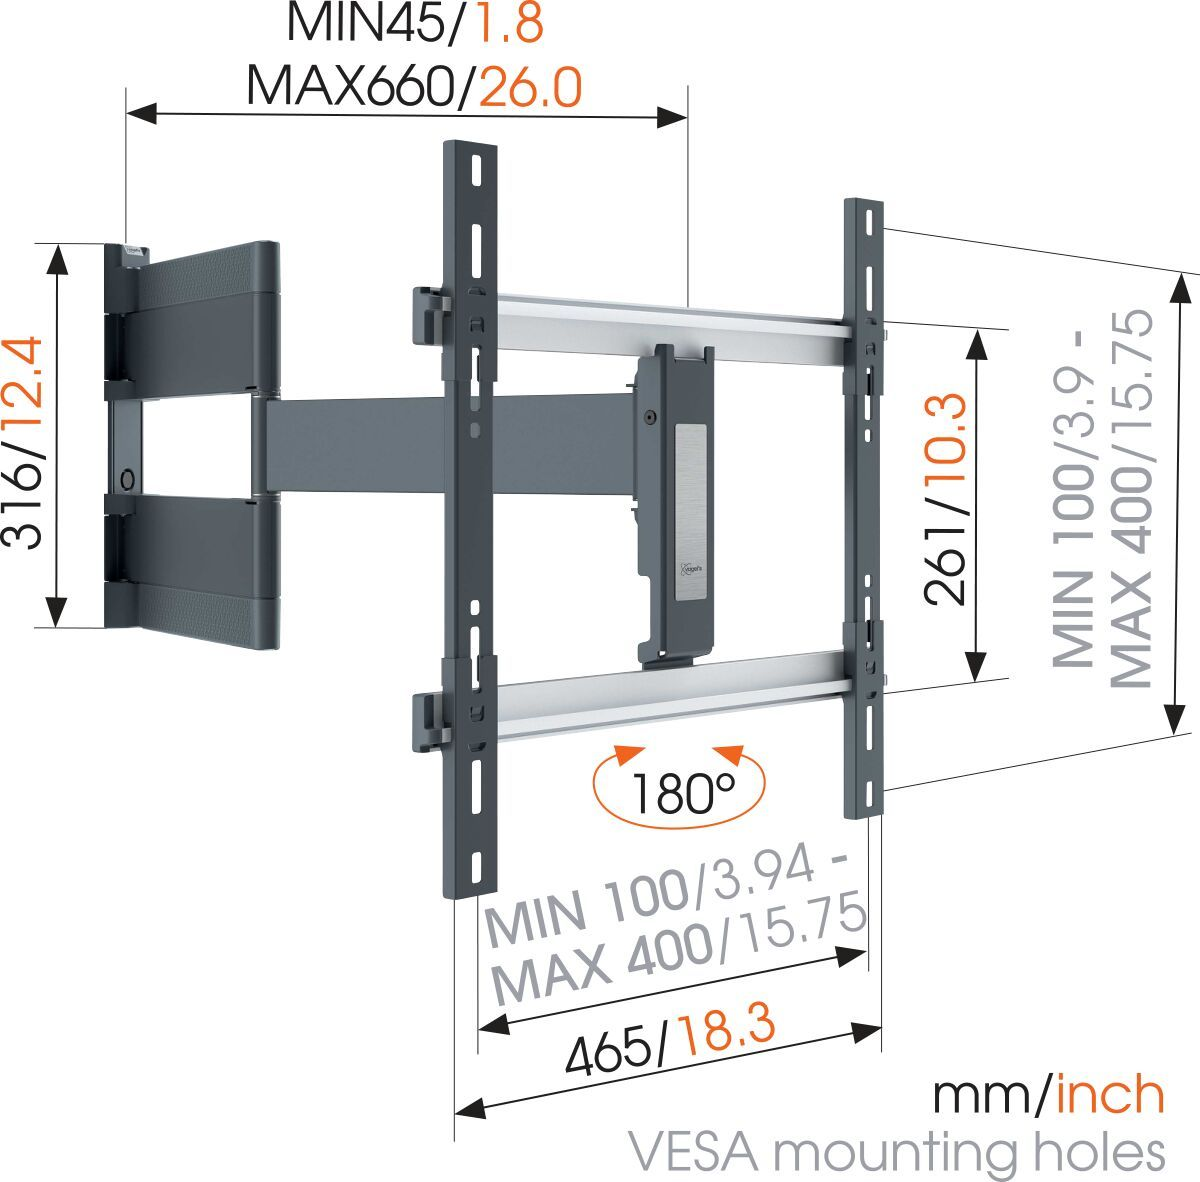 Vogel's THIN 546 ExtraThin Full-Motion TV Wall Mount for OLED TVs (black) - Suitable for 40 up to 65 inch TVs - Full motion (up to 180°) - - Dimensions